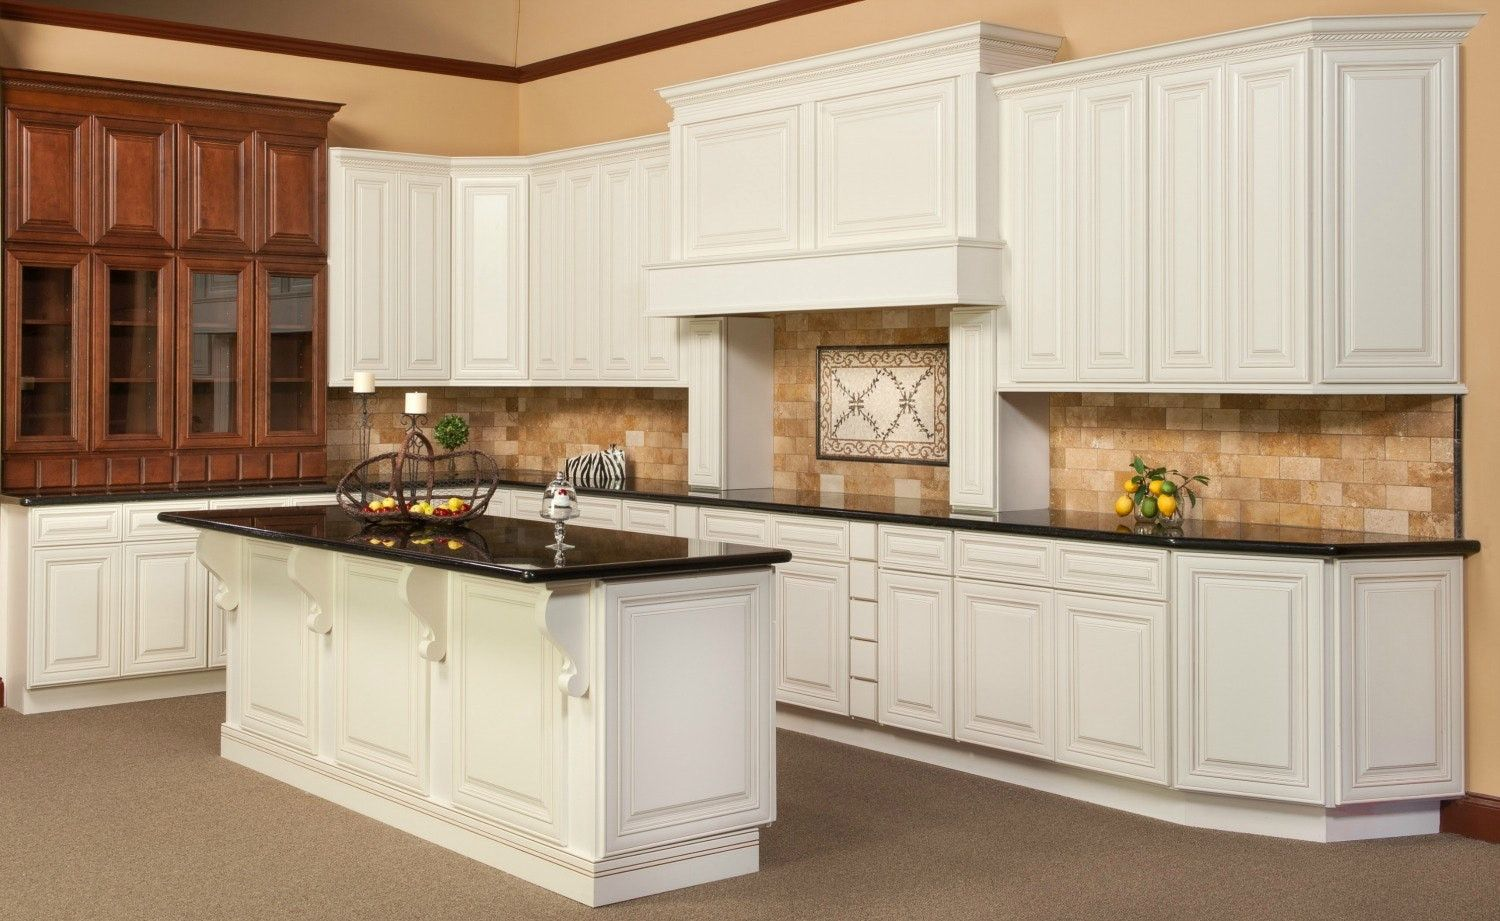 70 rta kitchen cabinets free shipping kitchen cabinets update rh pinterest com